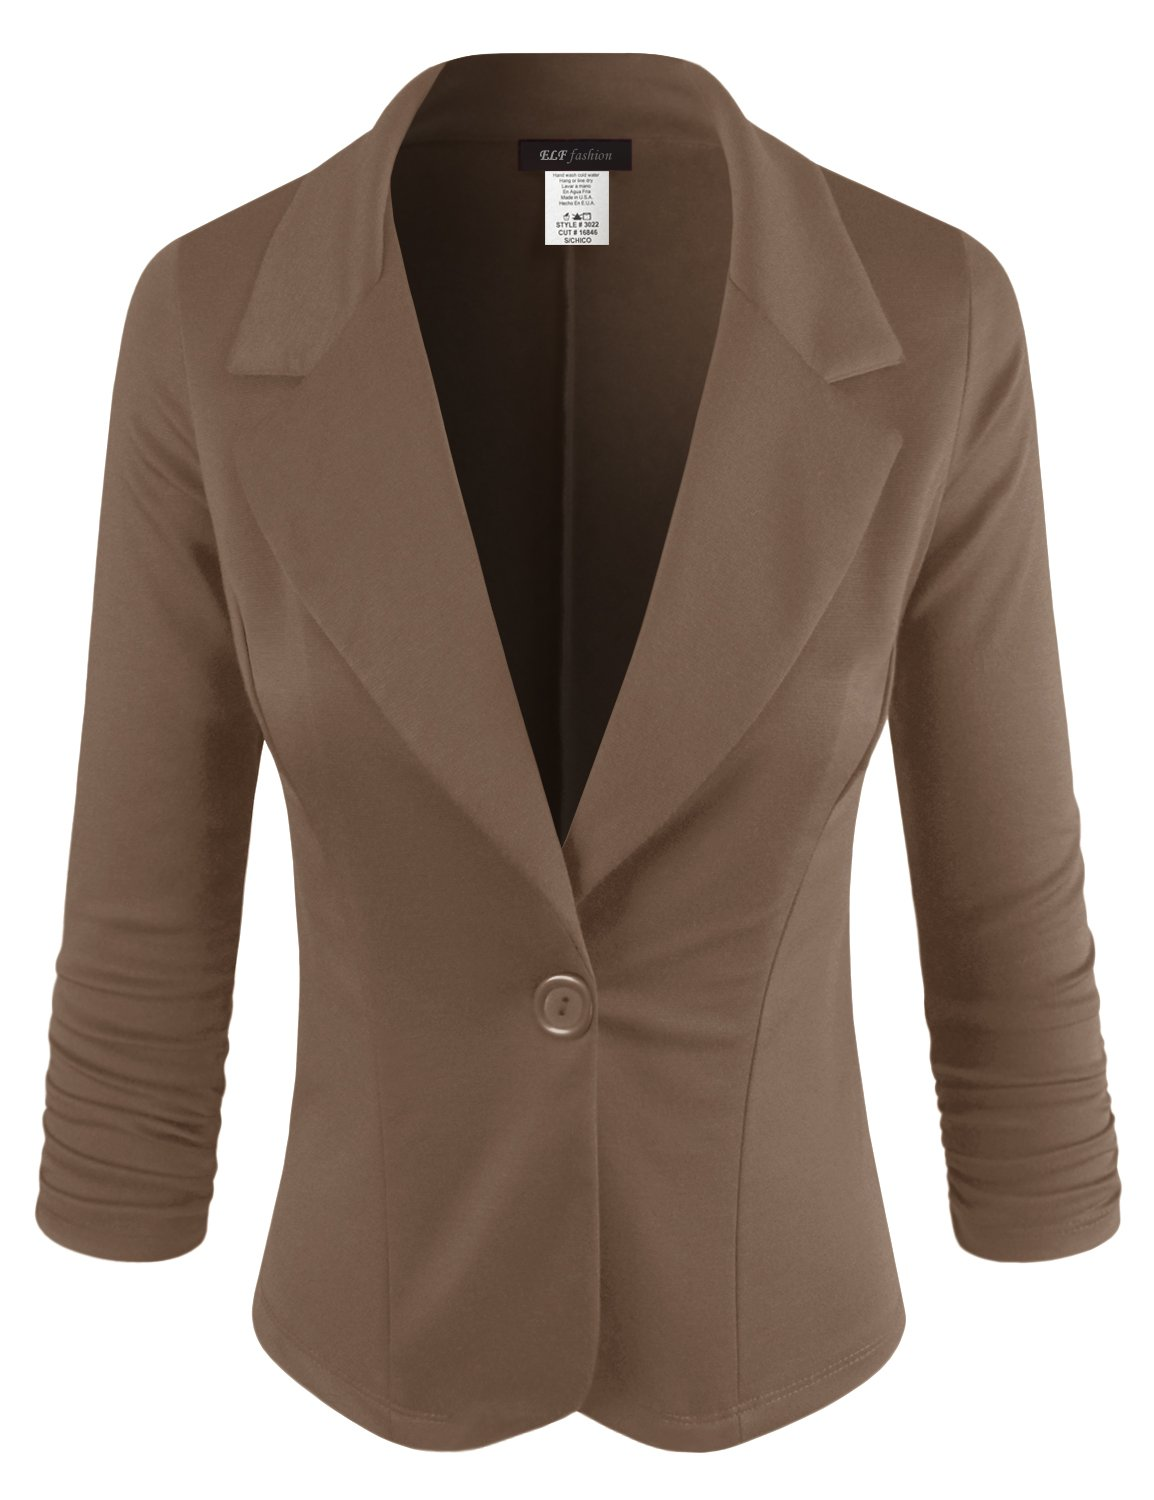 ELF FASHION Women Casual Work Knit Office Blazer Jacket Made In USA (Size S~3XL) BROWN 3XL